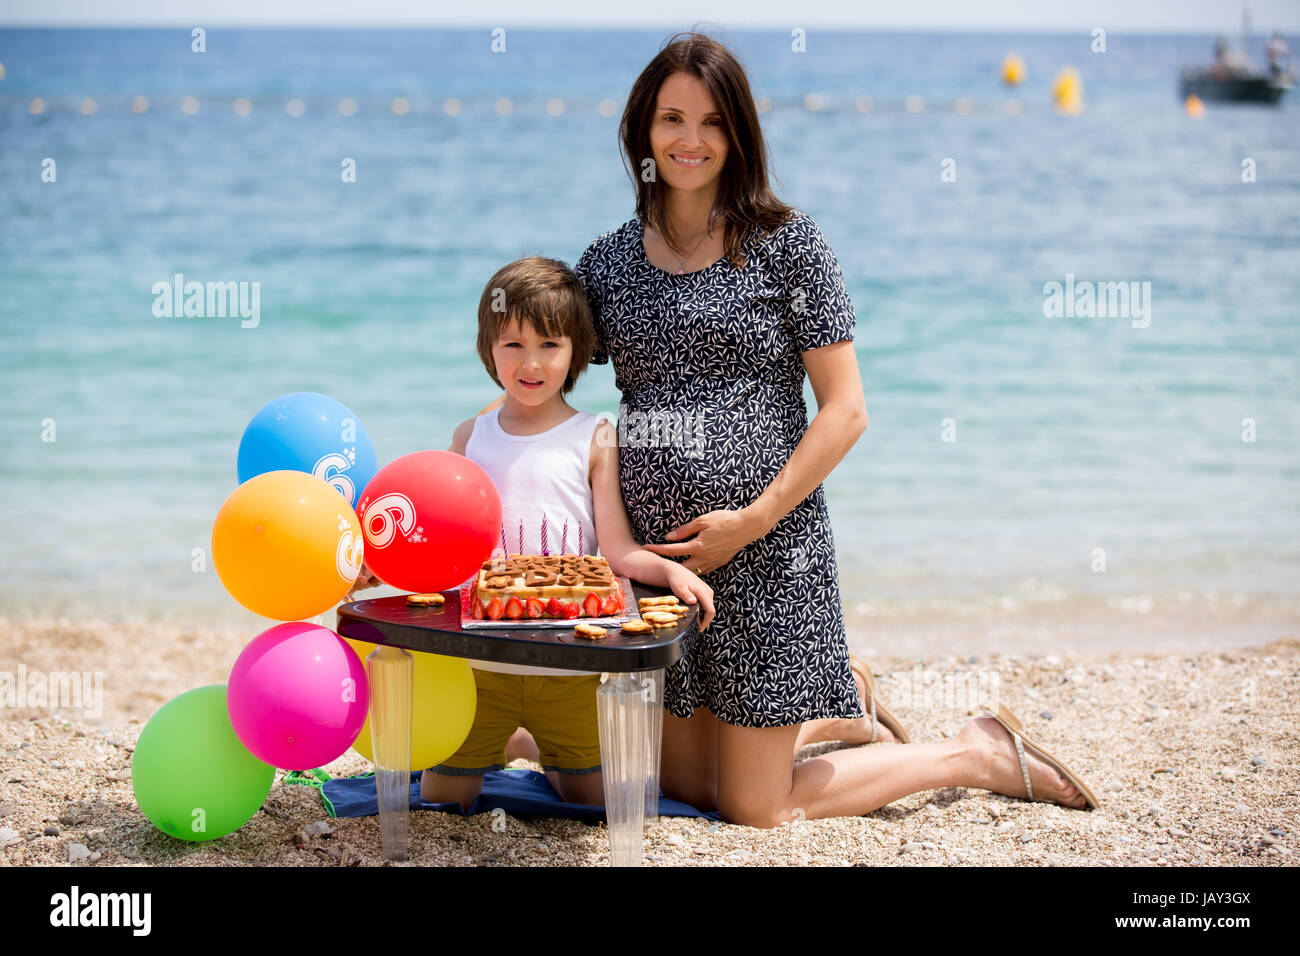 Sweet little child and his pregnant mom, celebrating his sixth birthday on the beach, cake, balloons, candles, cookies. Stock Photo